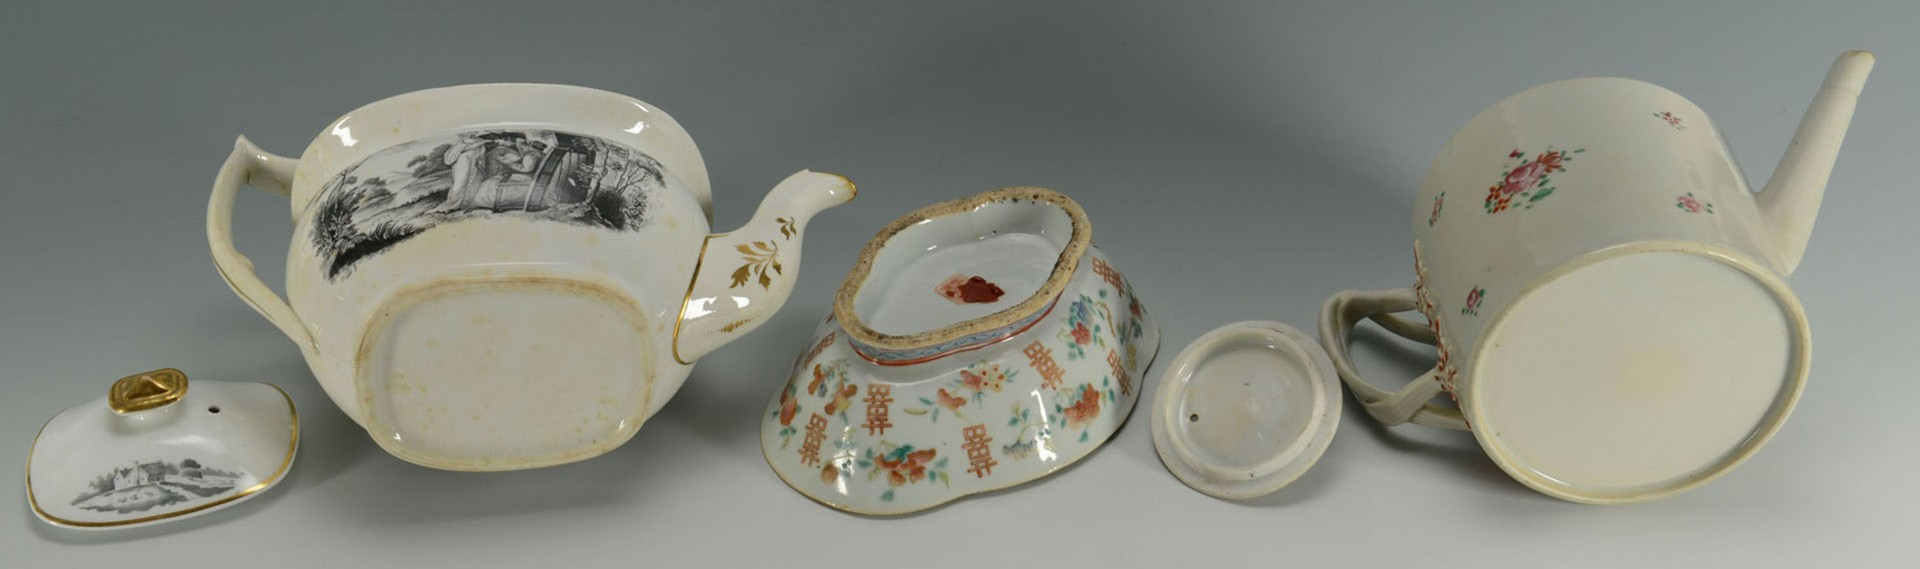 Lot 2872335: Grouping of Chinese and English porcelain